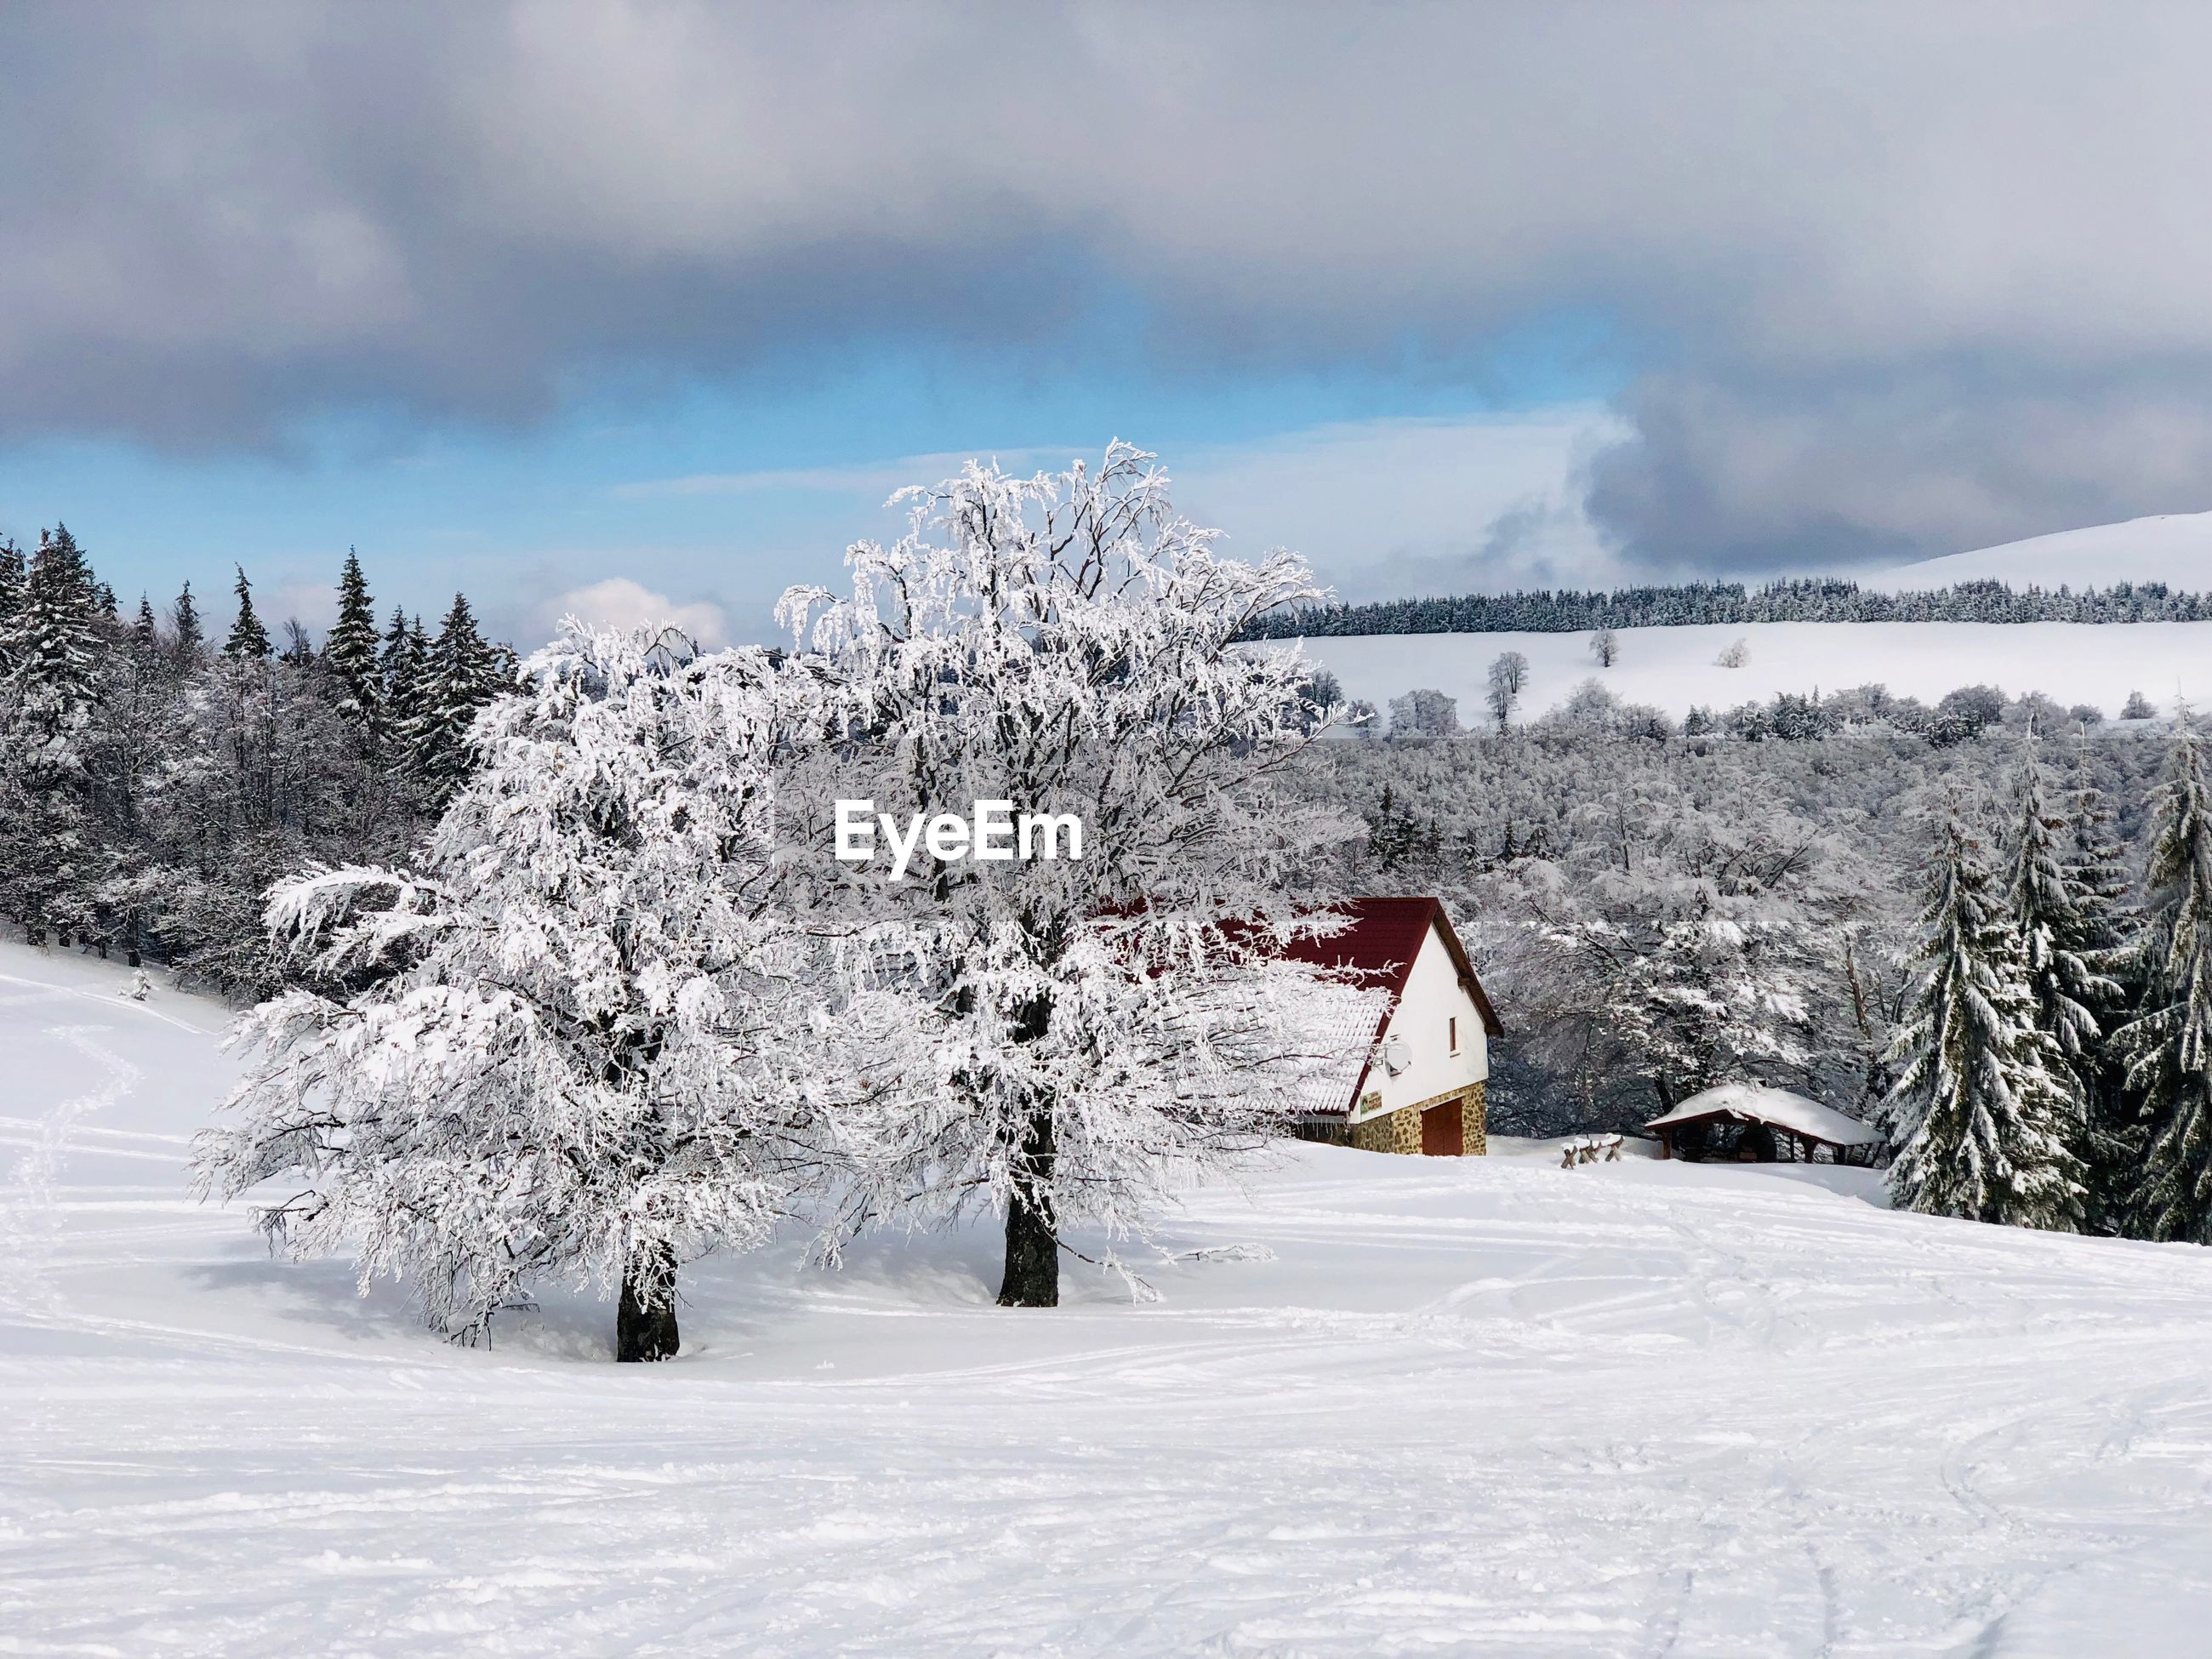 Lonely house in the mountains surrounded by forest covered in snow